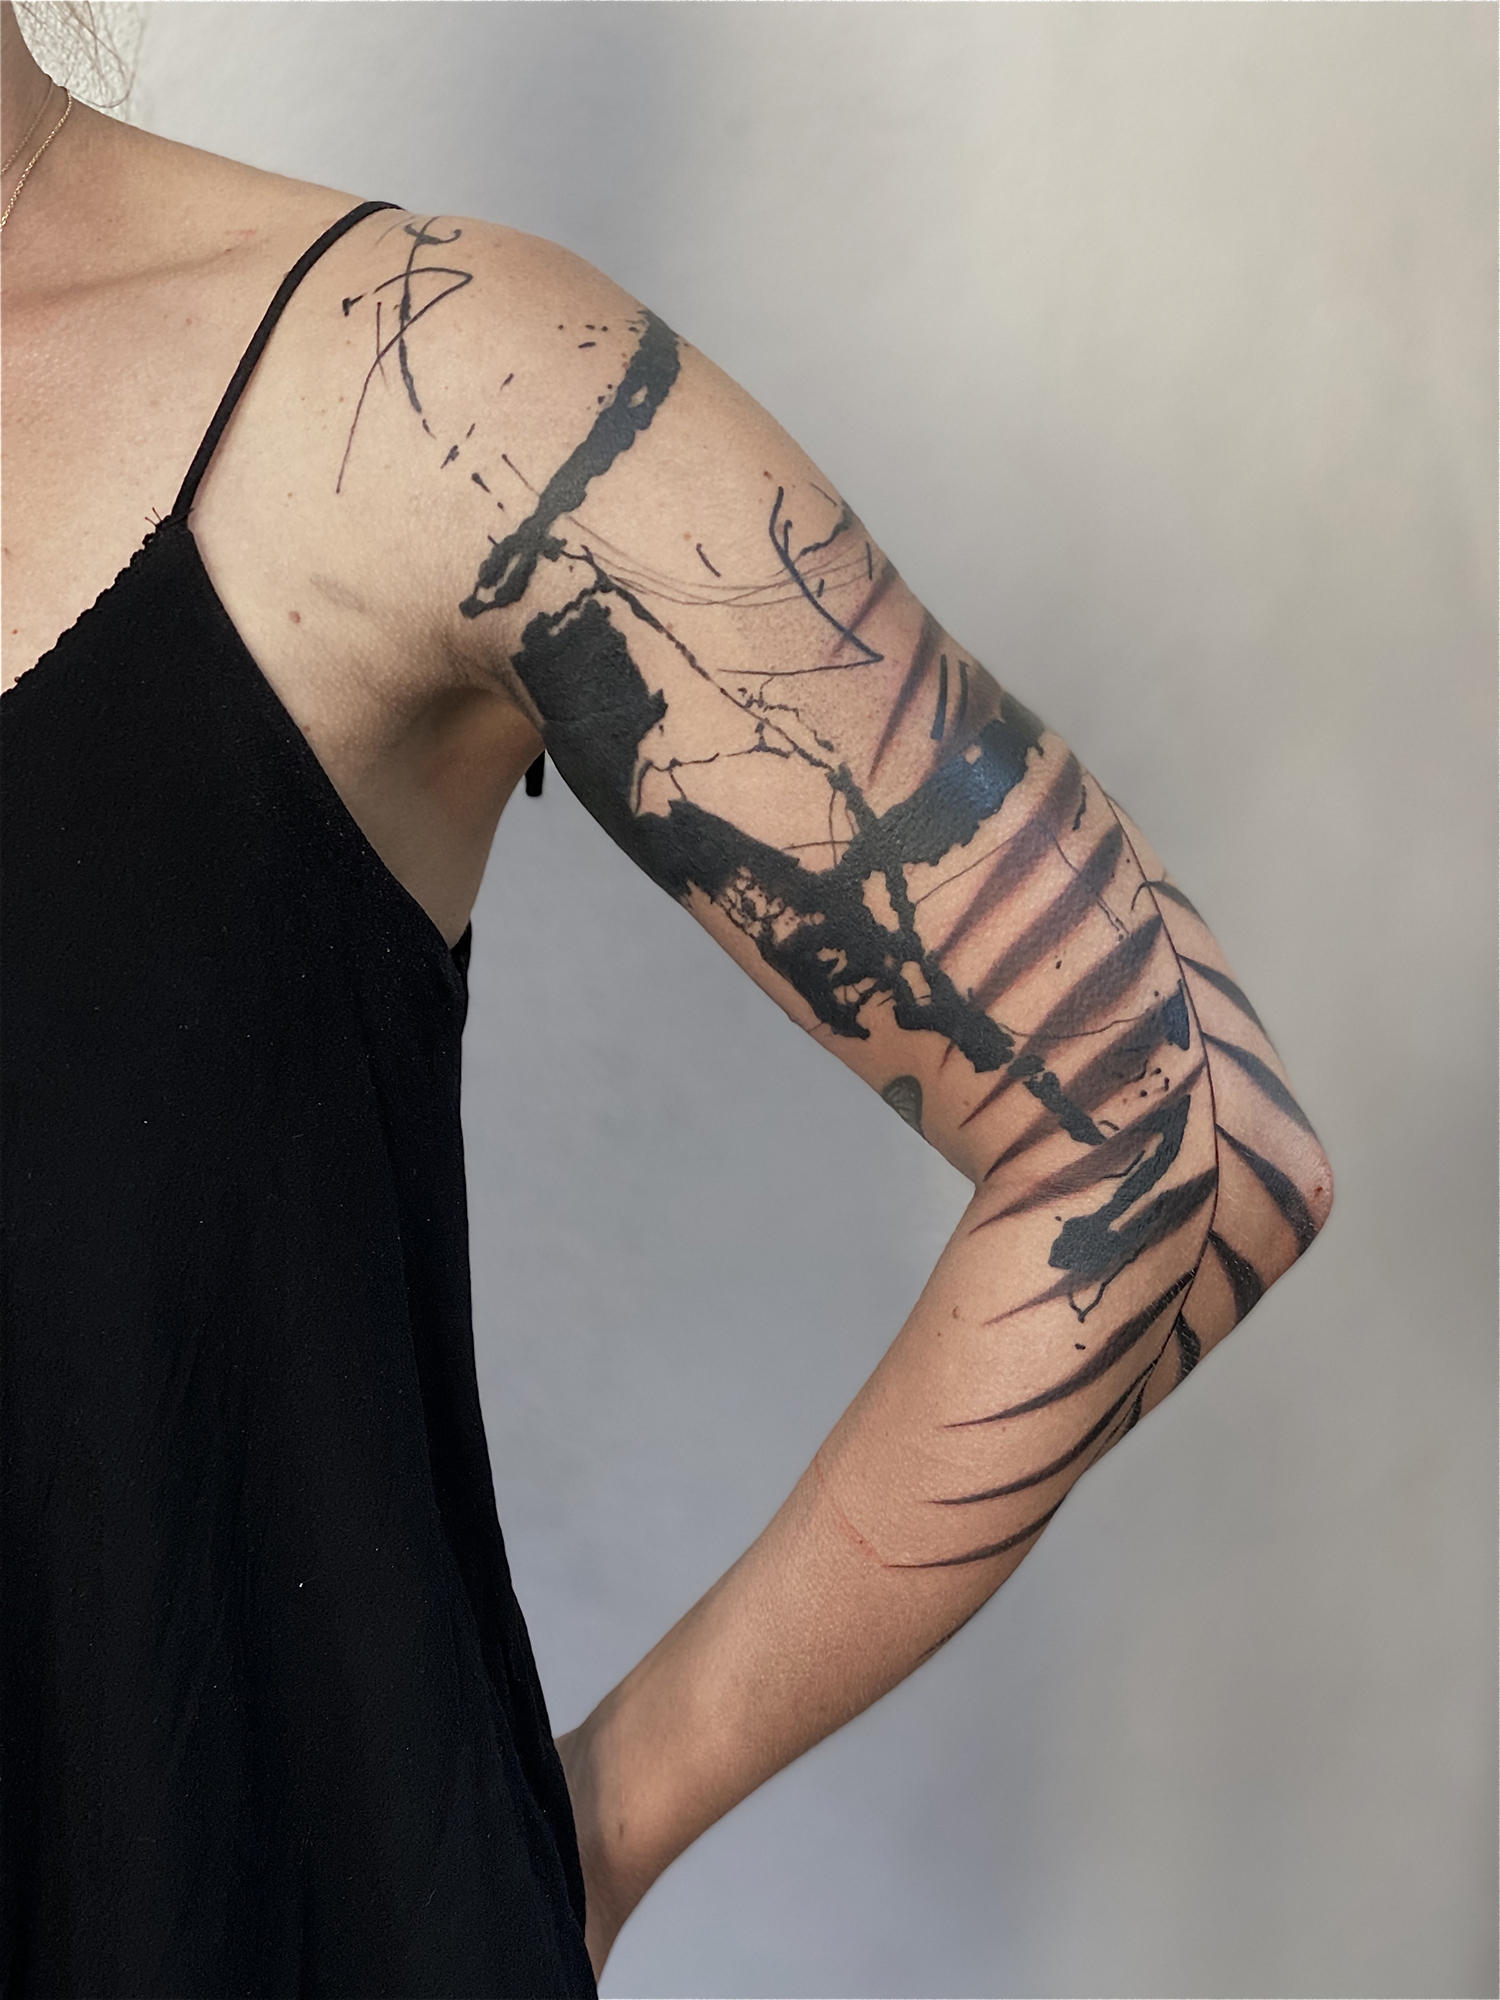 nature tattoo sleeve abstract, holistic tattooing by dane, danepsydala